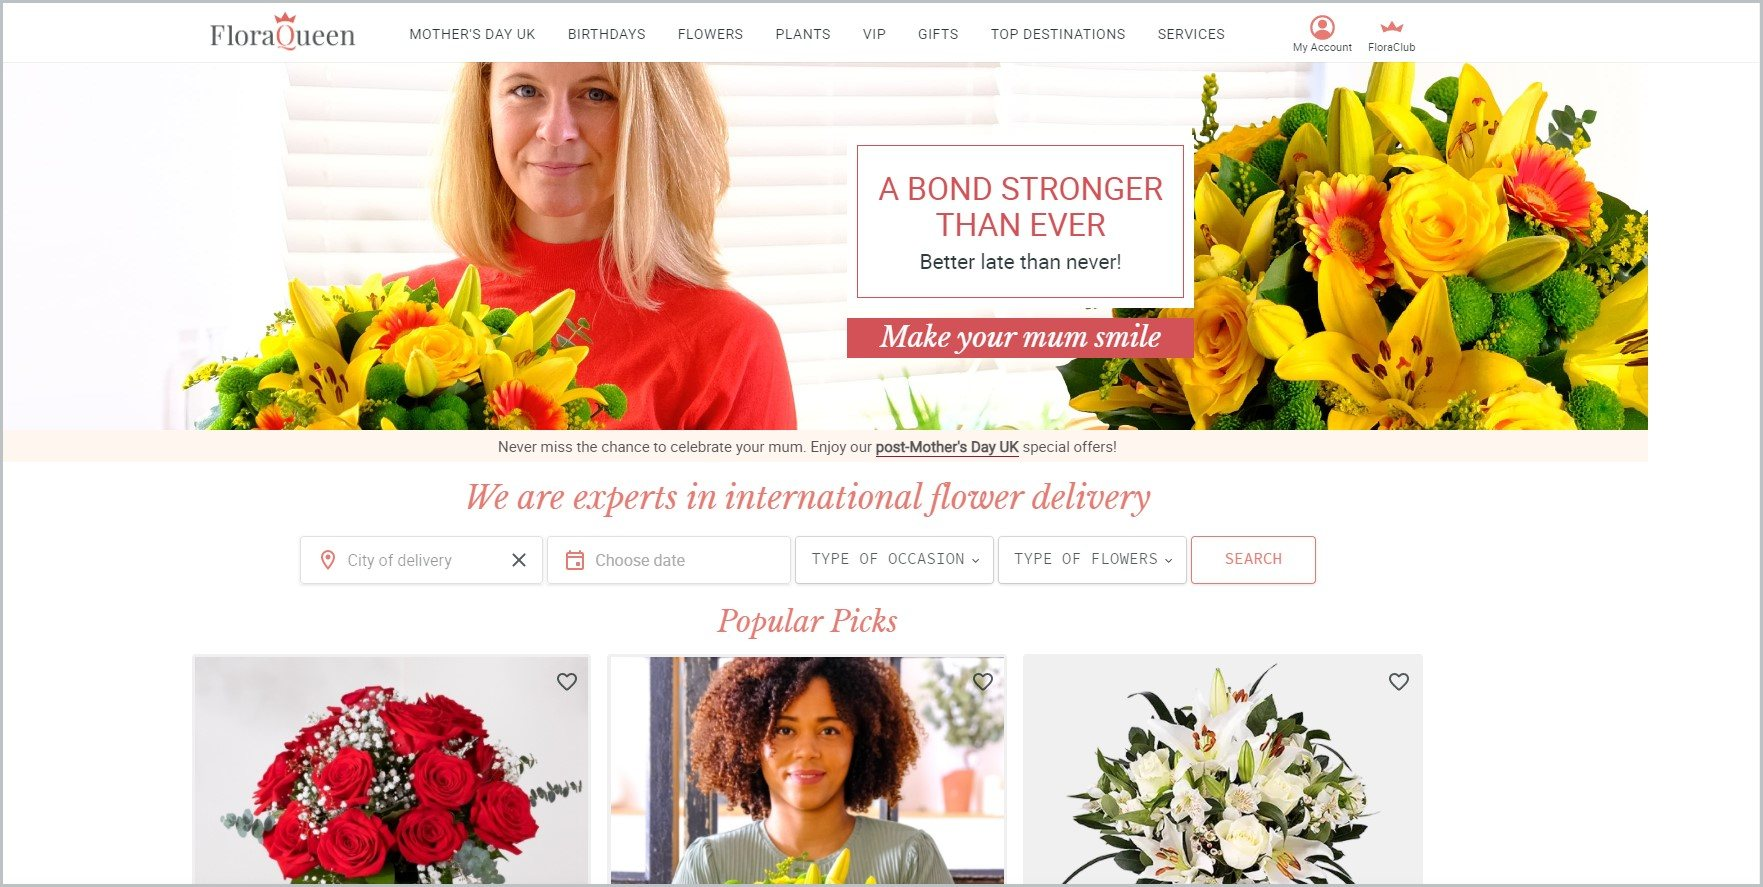 screenshot of FloraQueen homepage with images of woman holding a bouquet of flowers and other flower arrangements